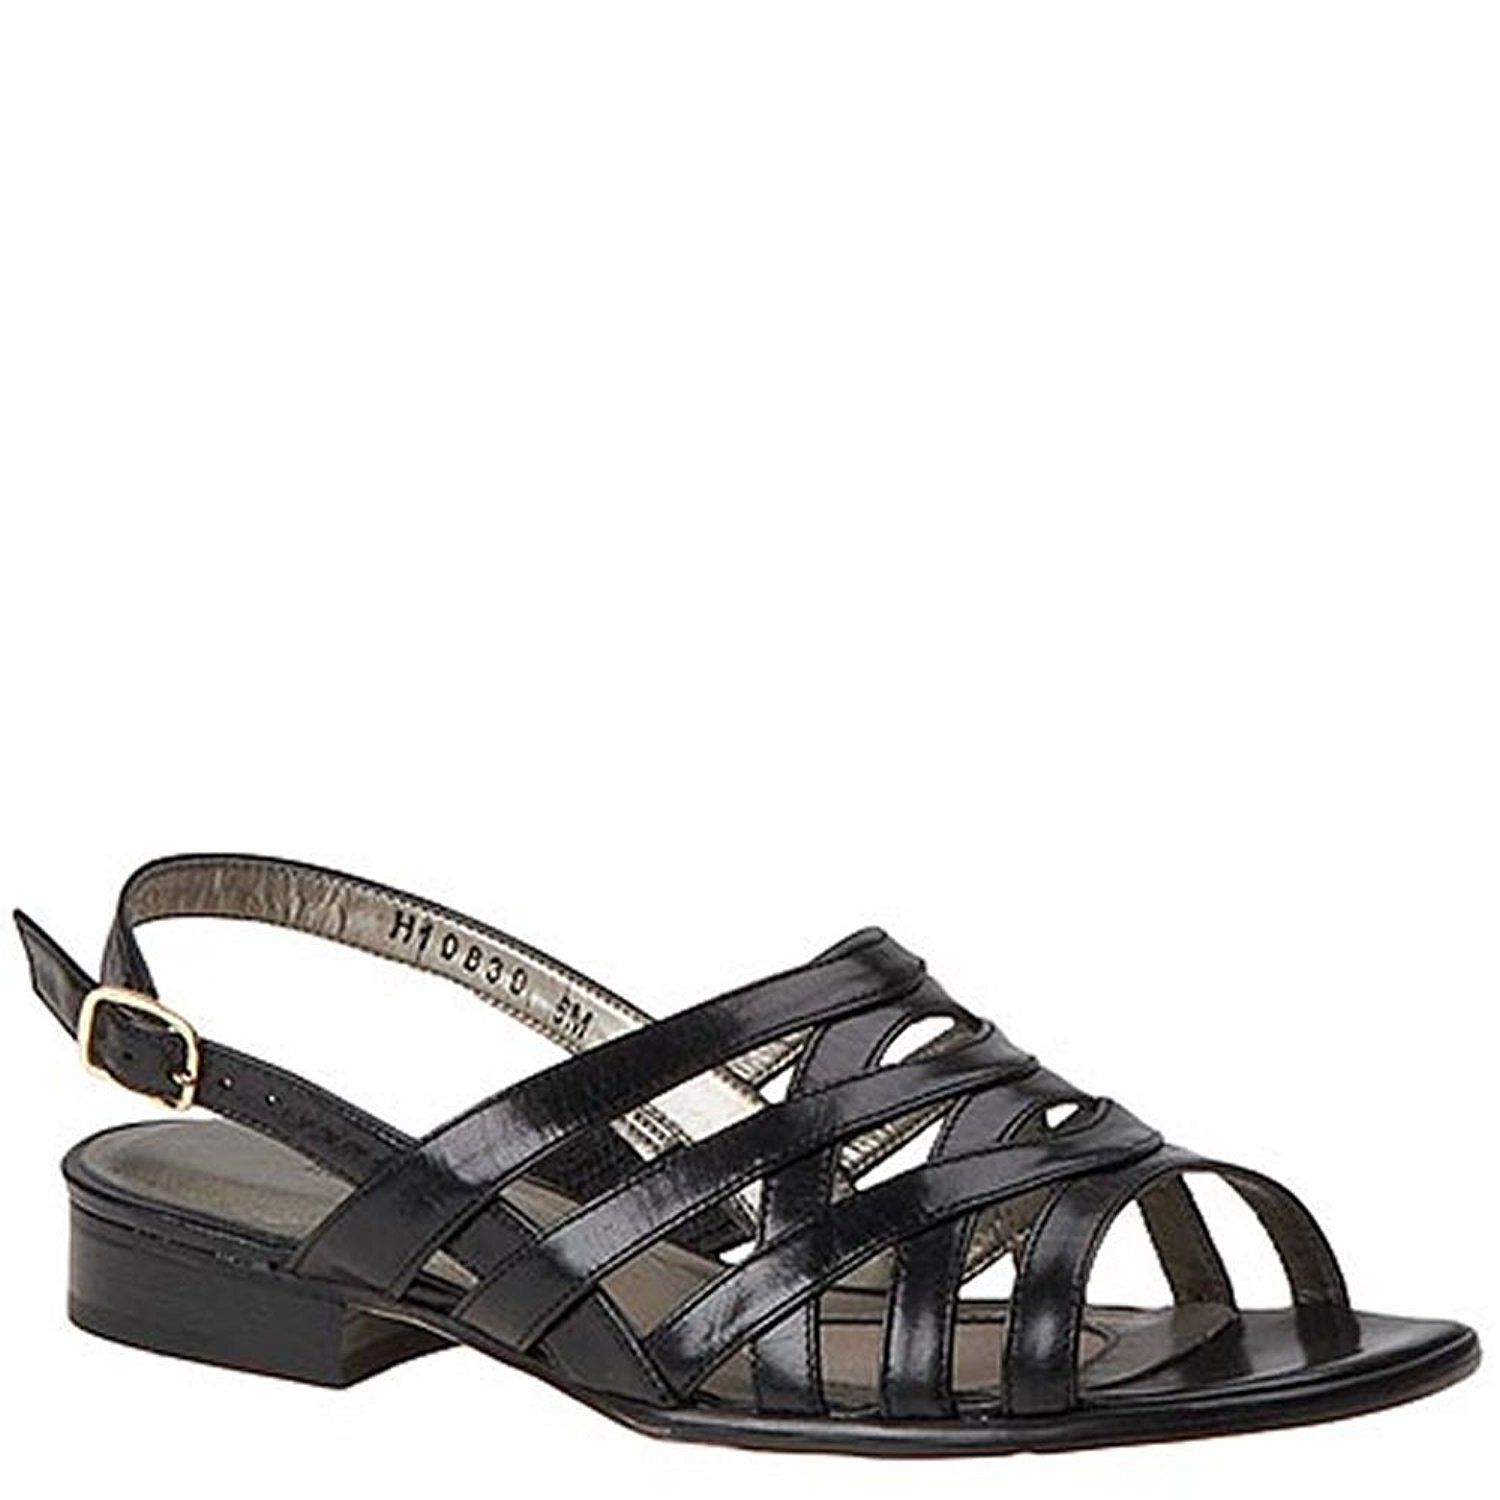 Womens sandals reviews - Mark Lemp Classics Women S Calypso Sandal Read More Reviews Of The Product By Visiting The